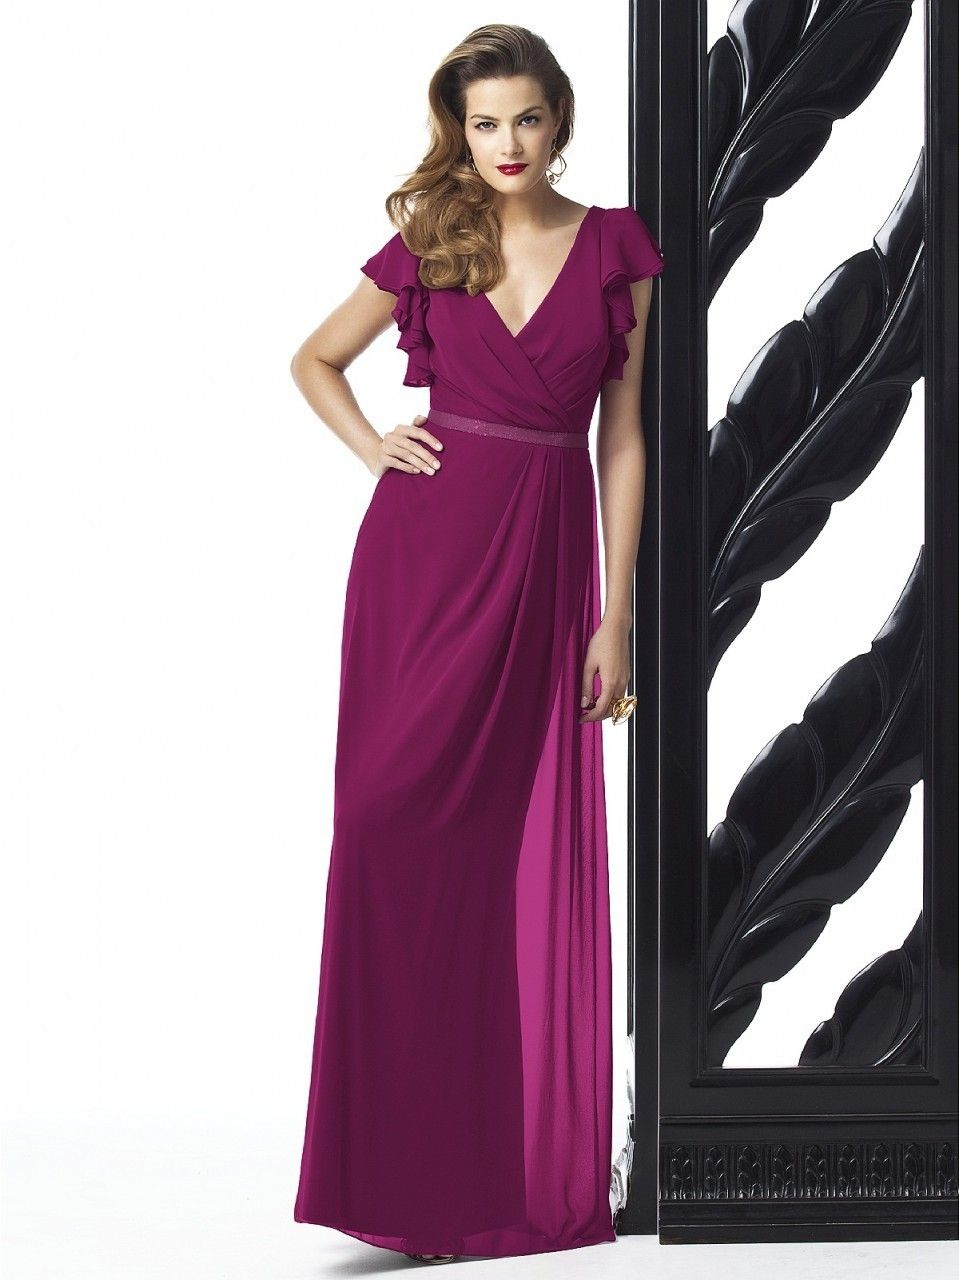 Dessy Collection Dress Style 2874 only $253.99 bebridesmaid.com